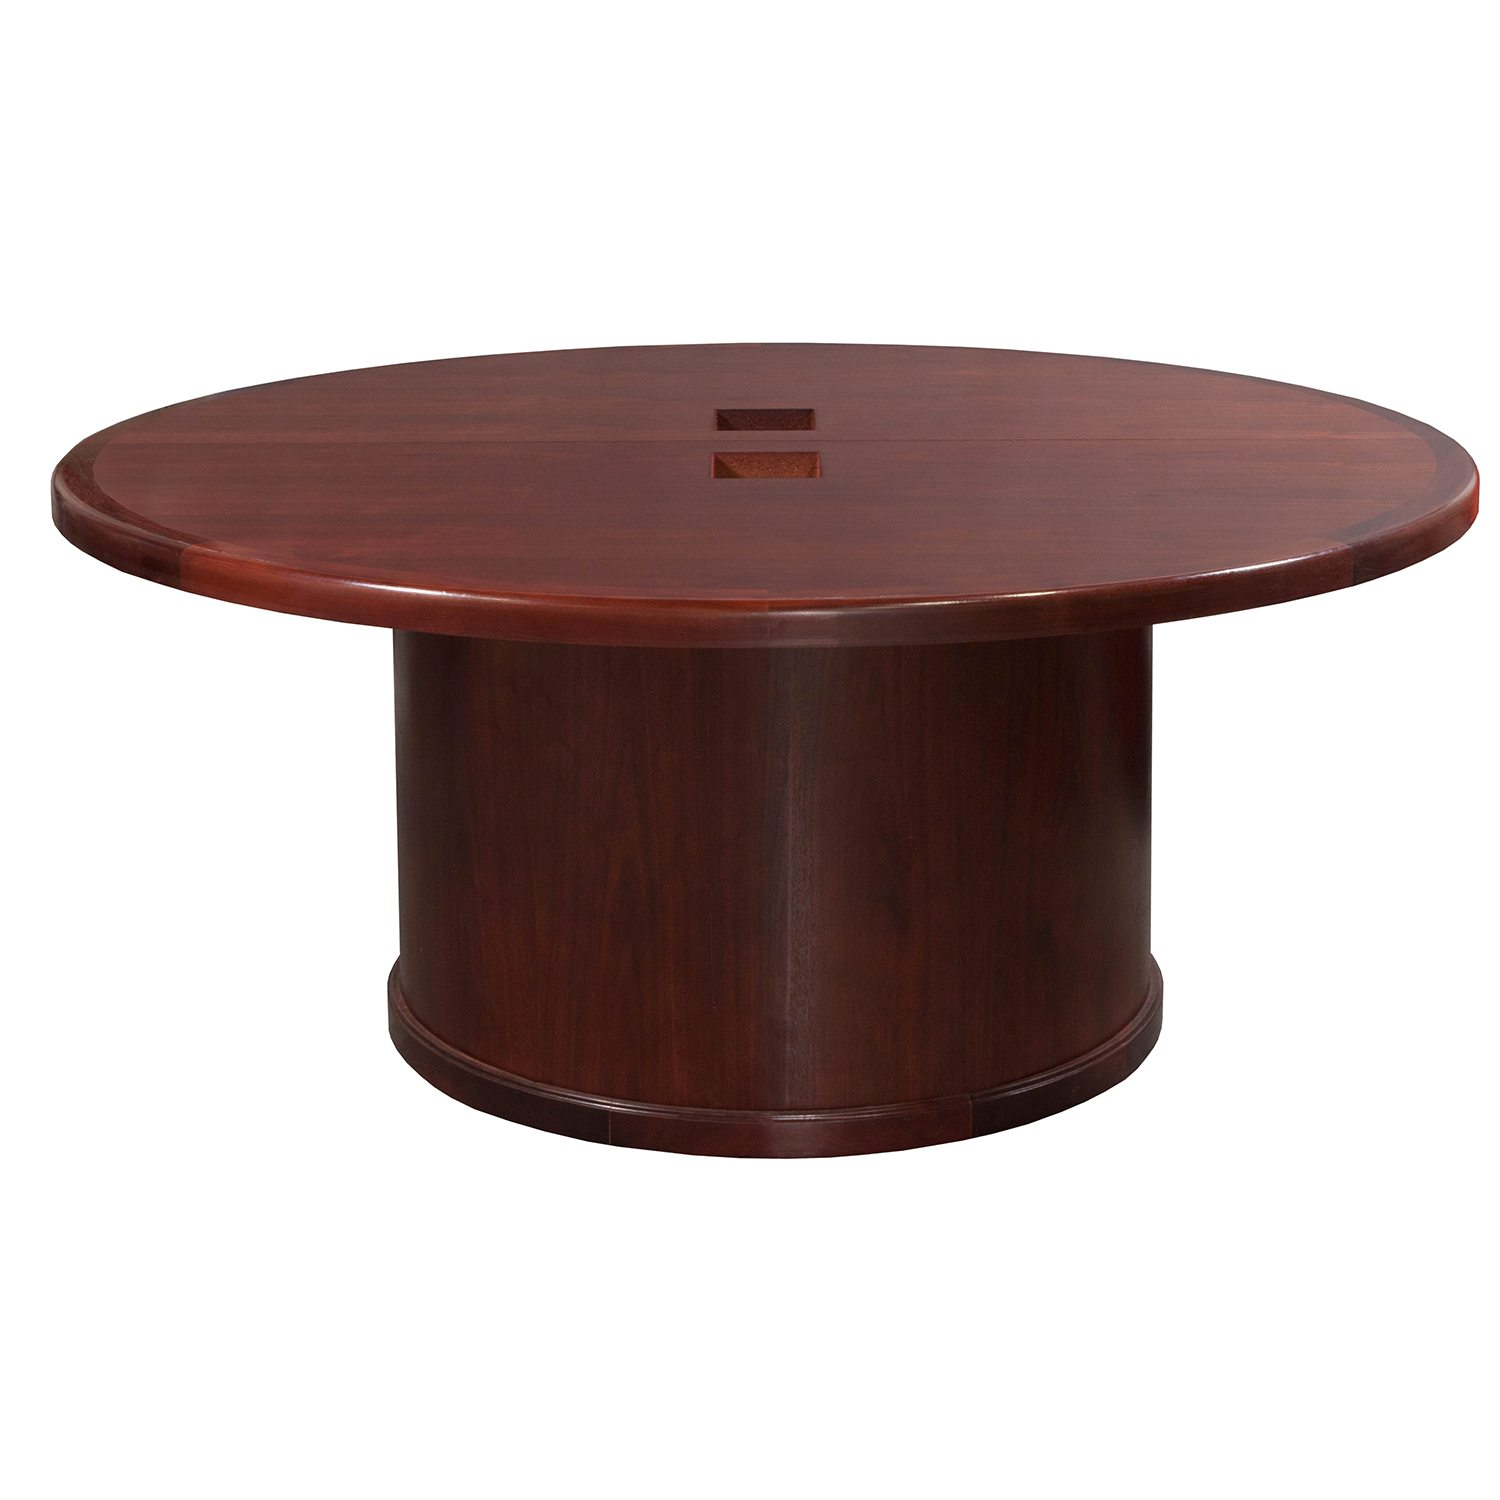 Steelcase Used 66 Inch Veneer Round Conference Table, Mahogany